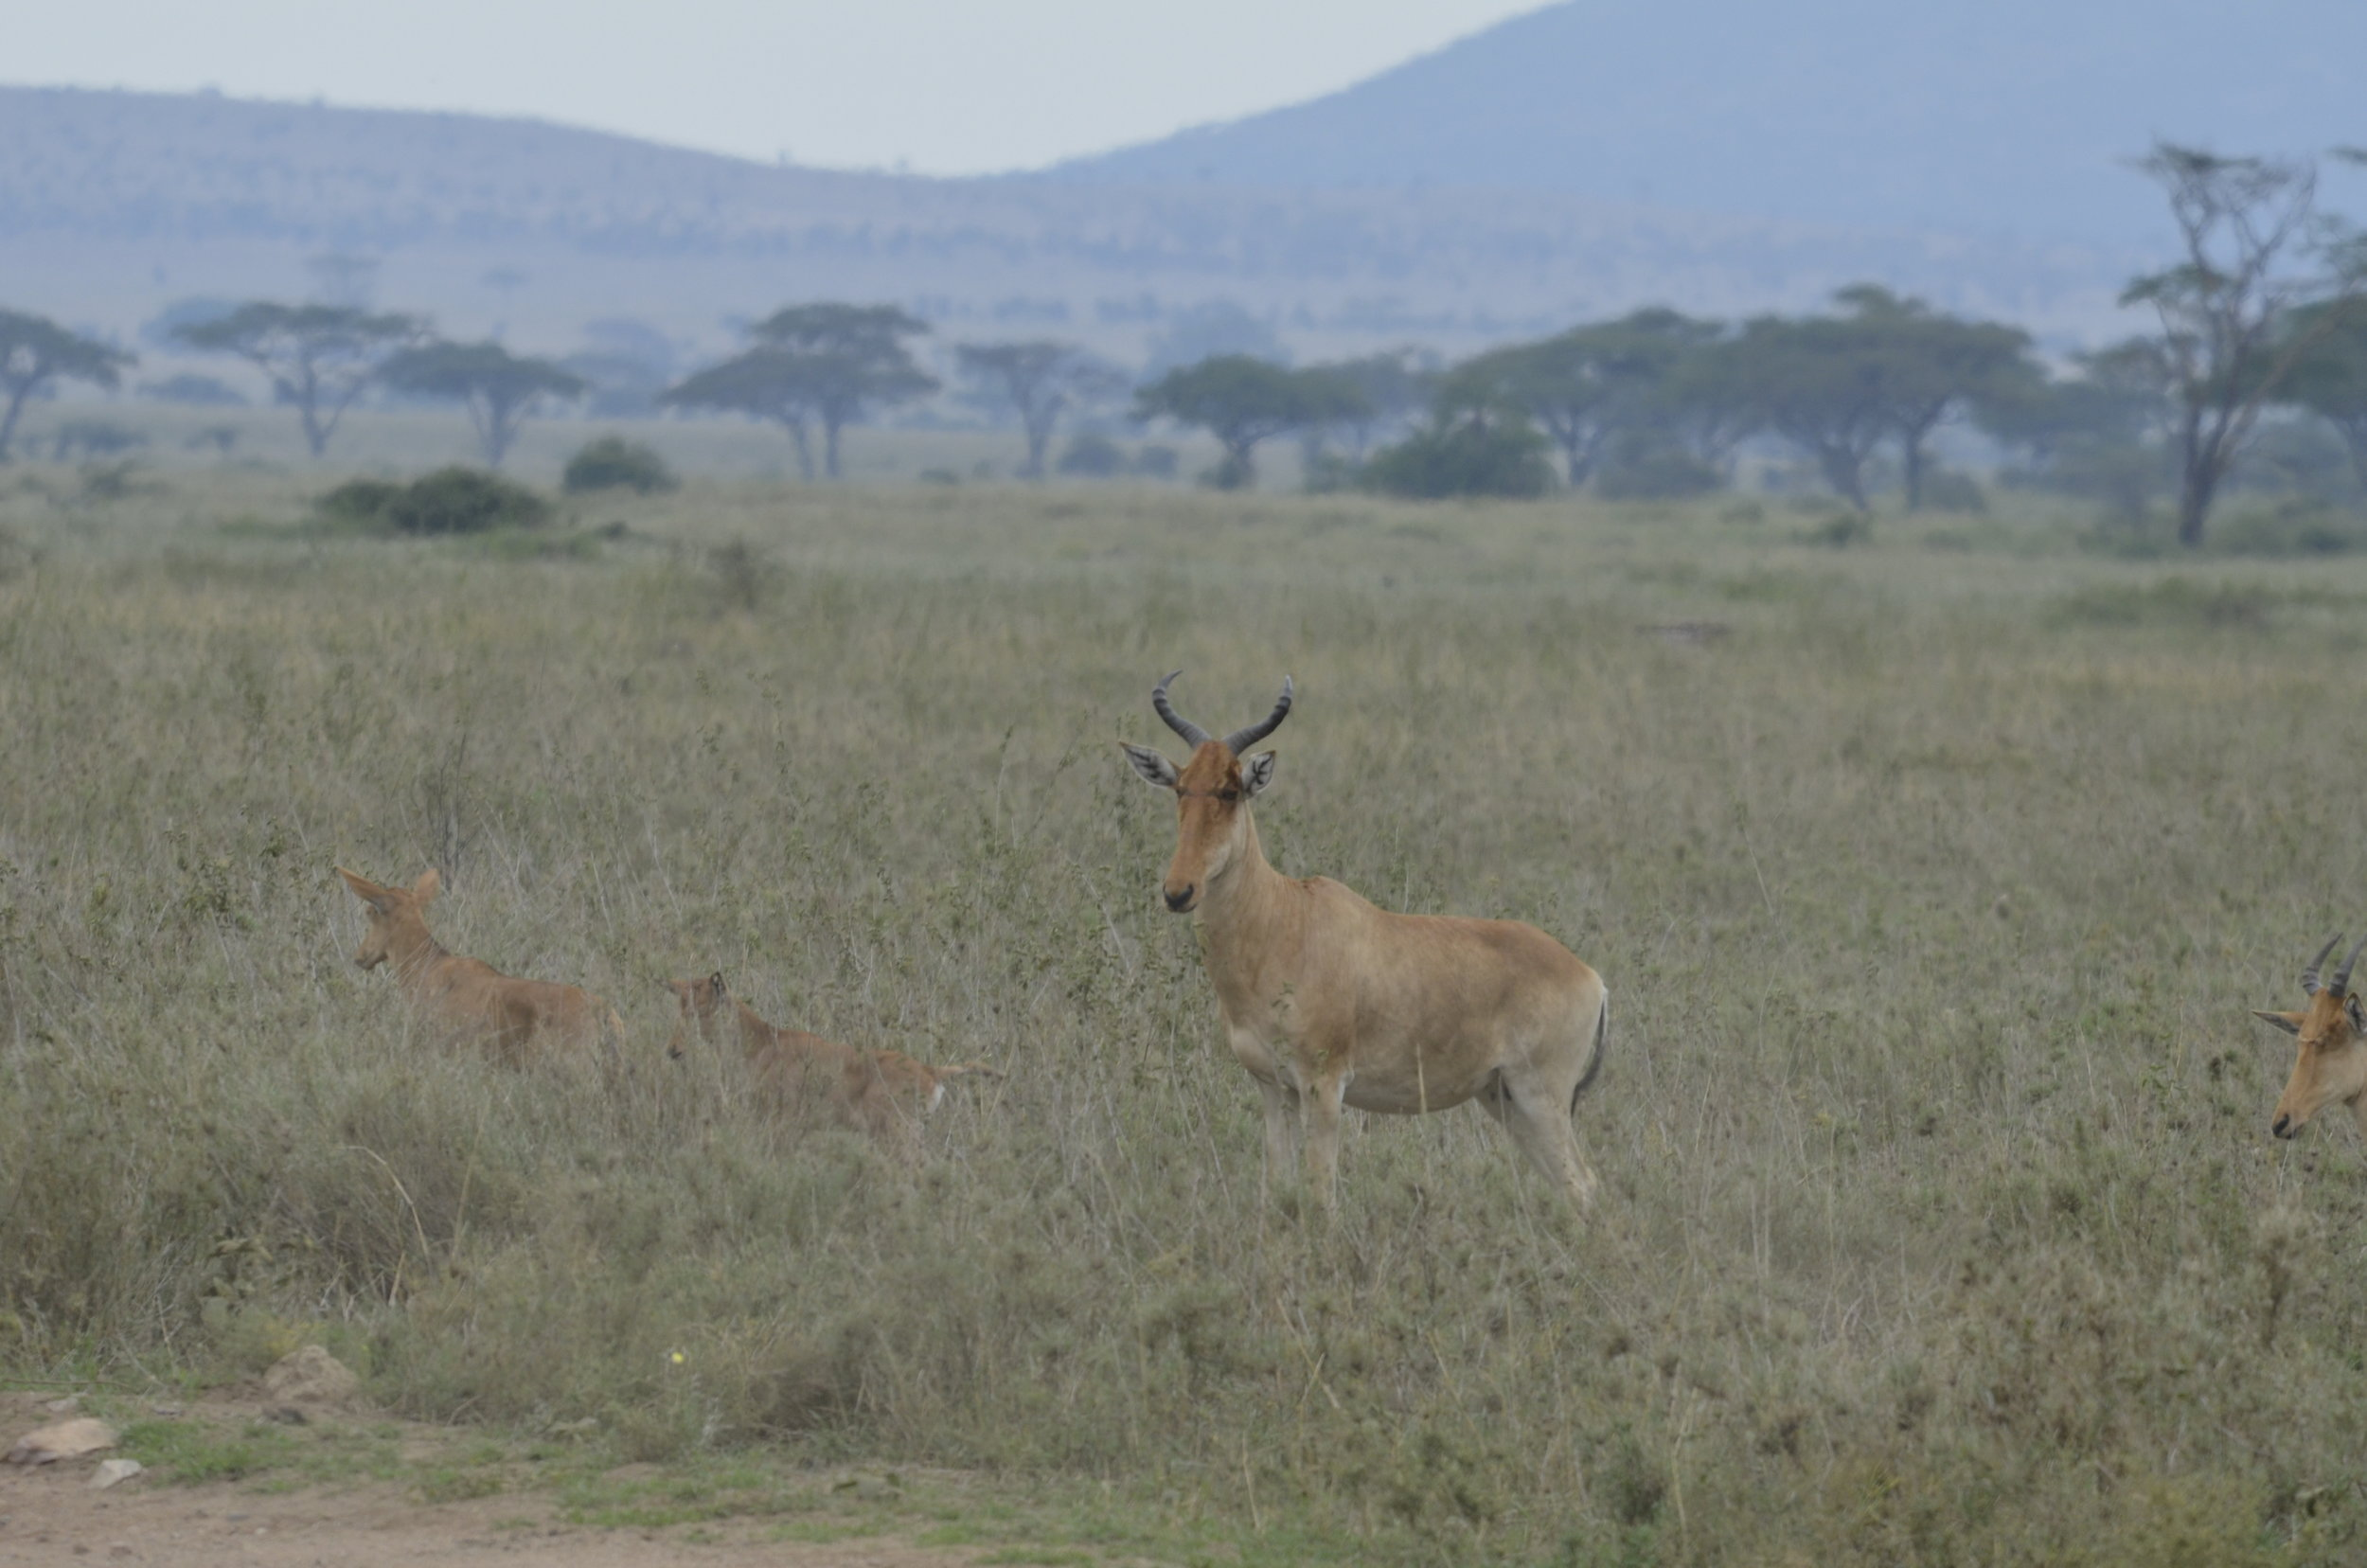 Coke's Hartebeest (Kongoni) - native to Kenya and Tanzania